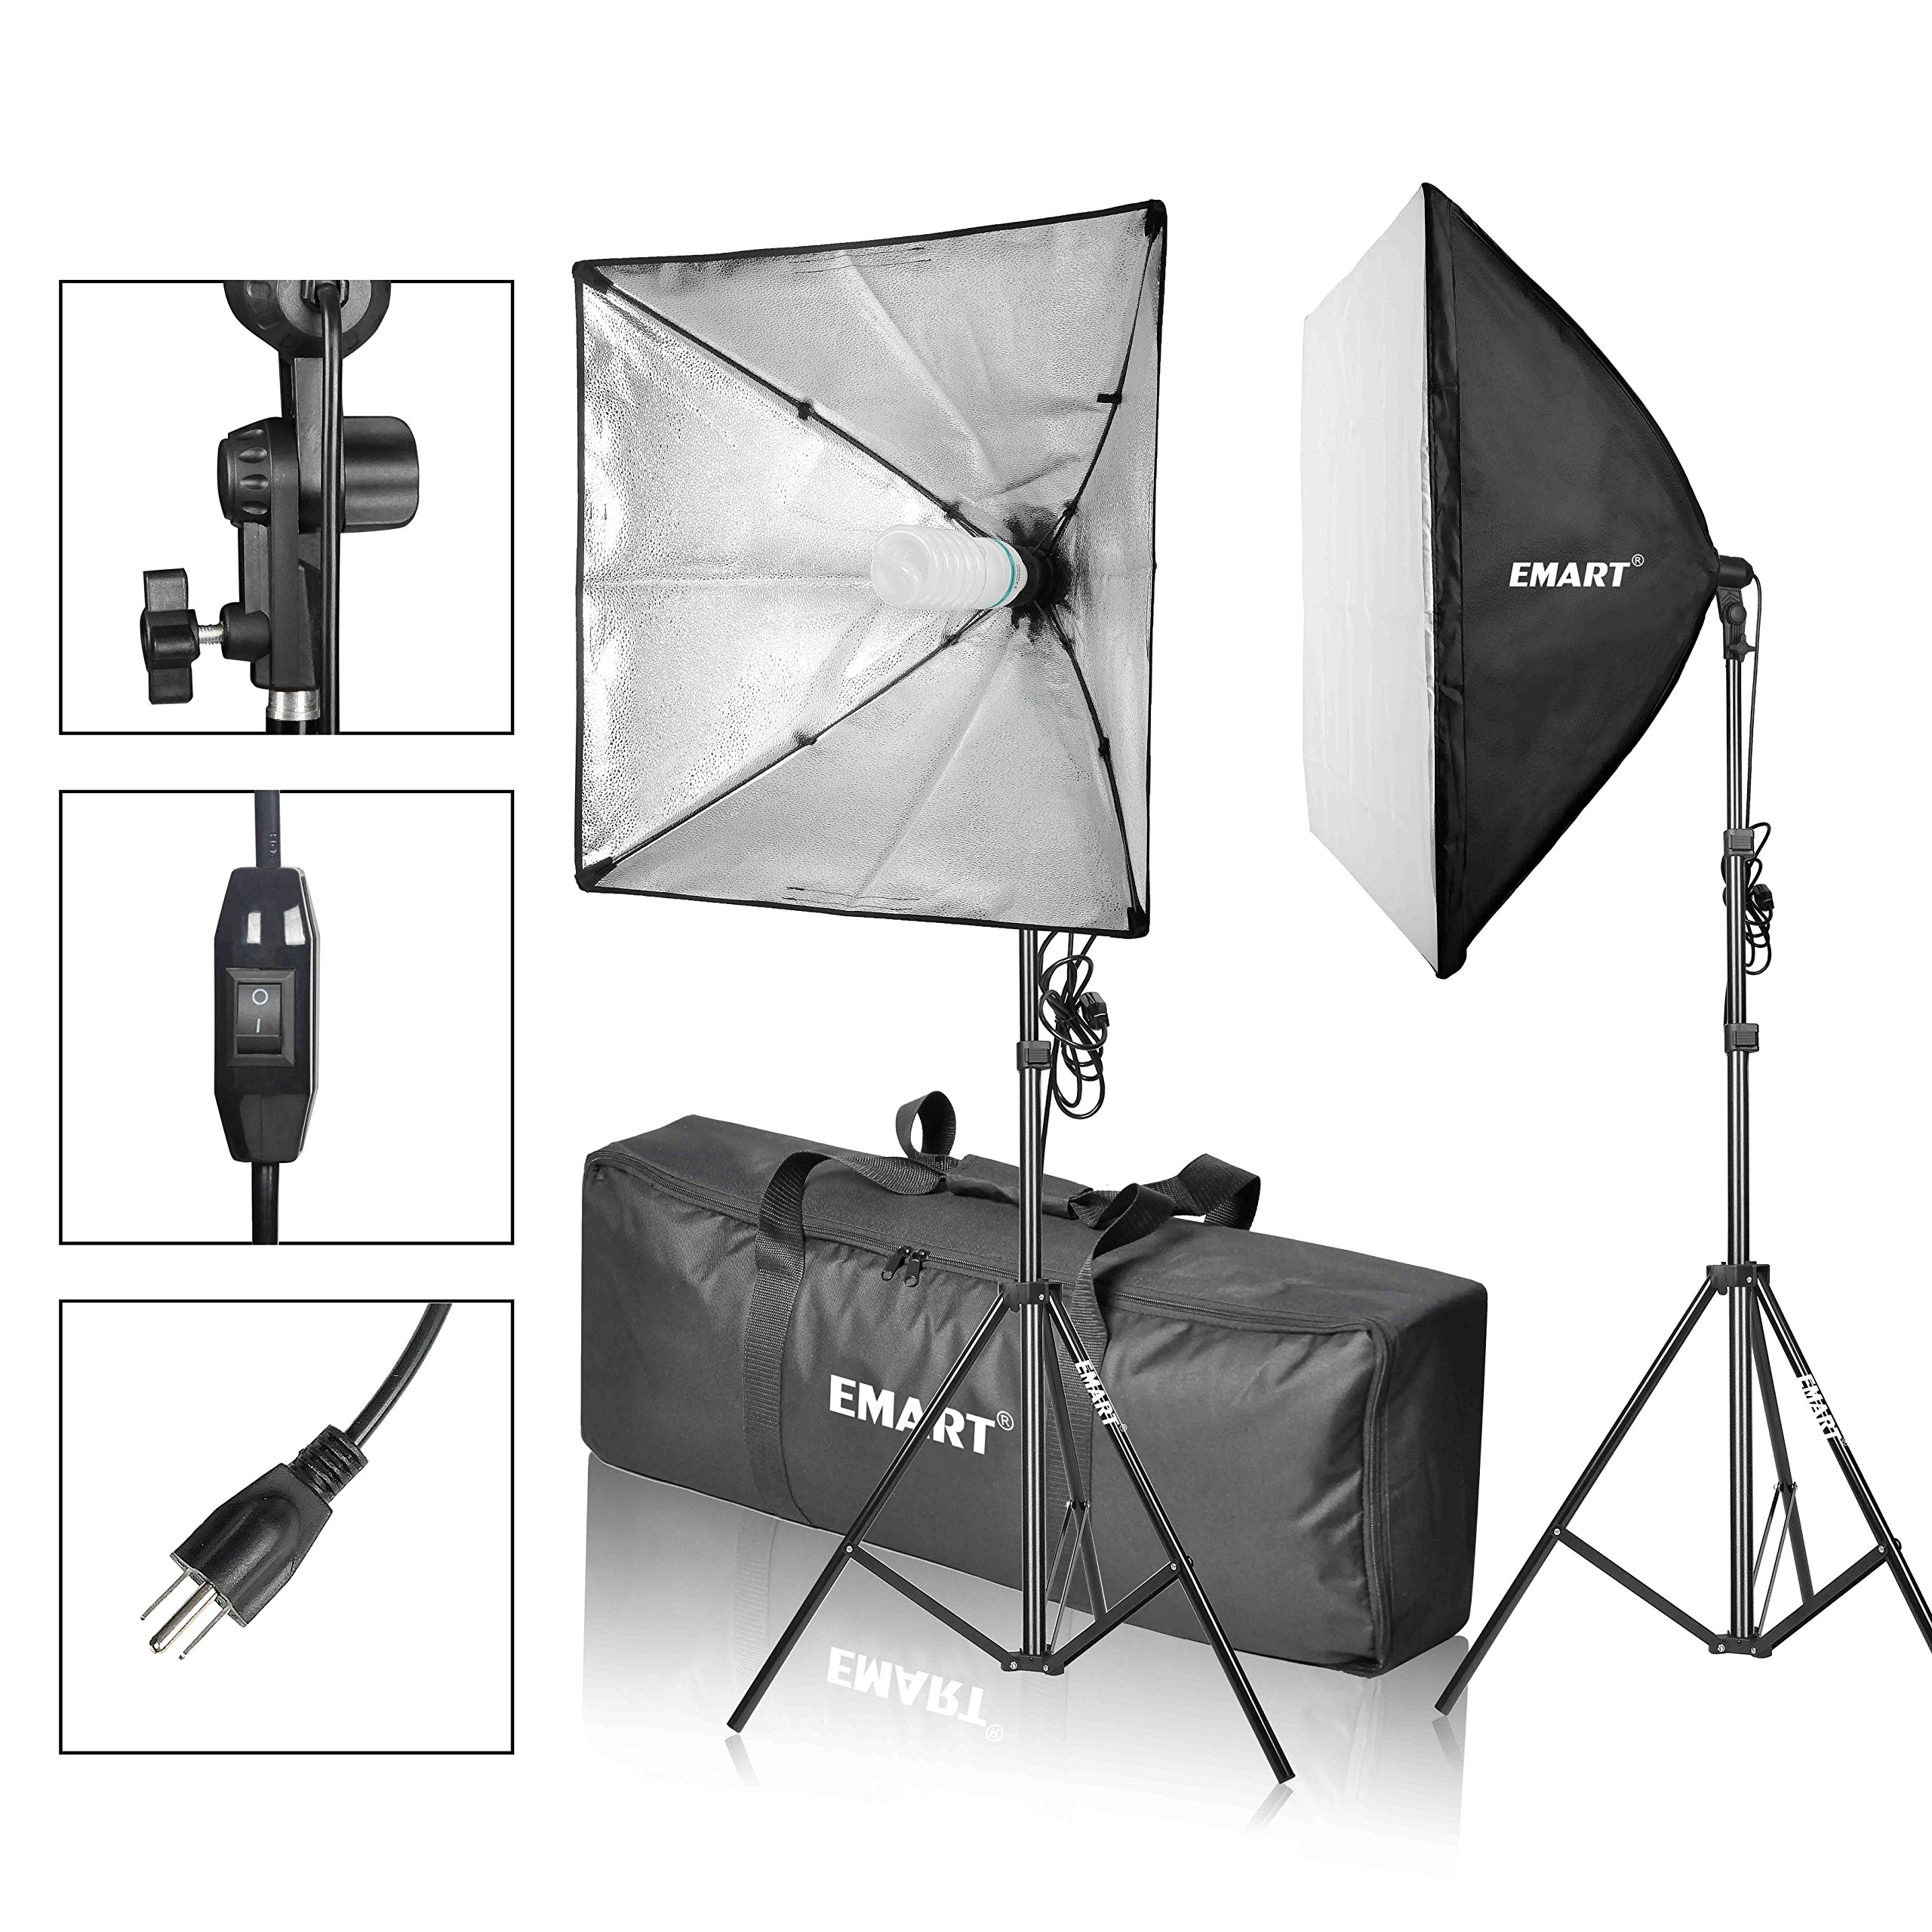 EMART Softbox Photography Video Studio Equipment Lighting Kit, 900 Watt Continuous Photo Portrait Light System, 24'' x 24'' Softboxes